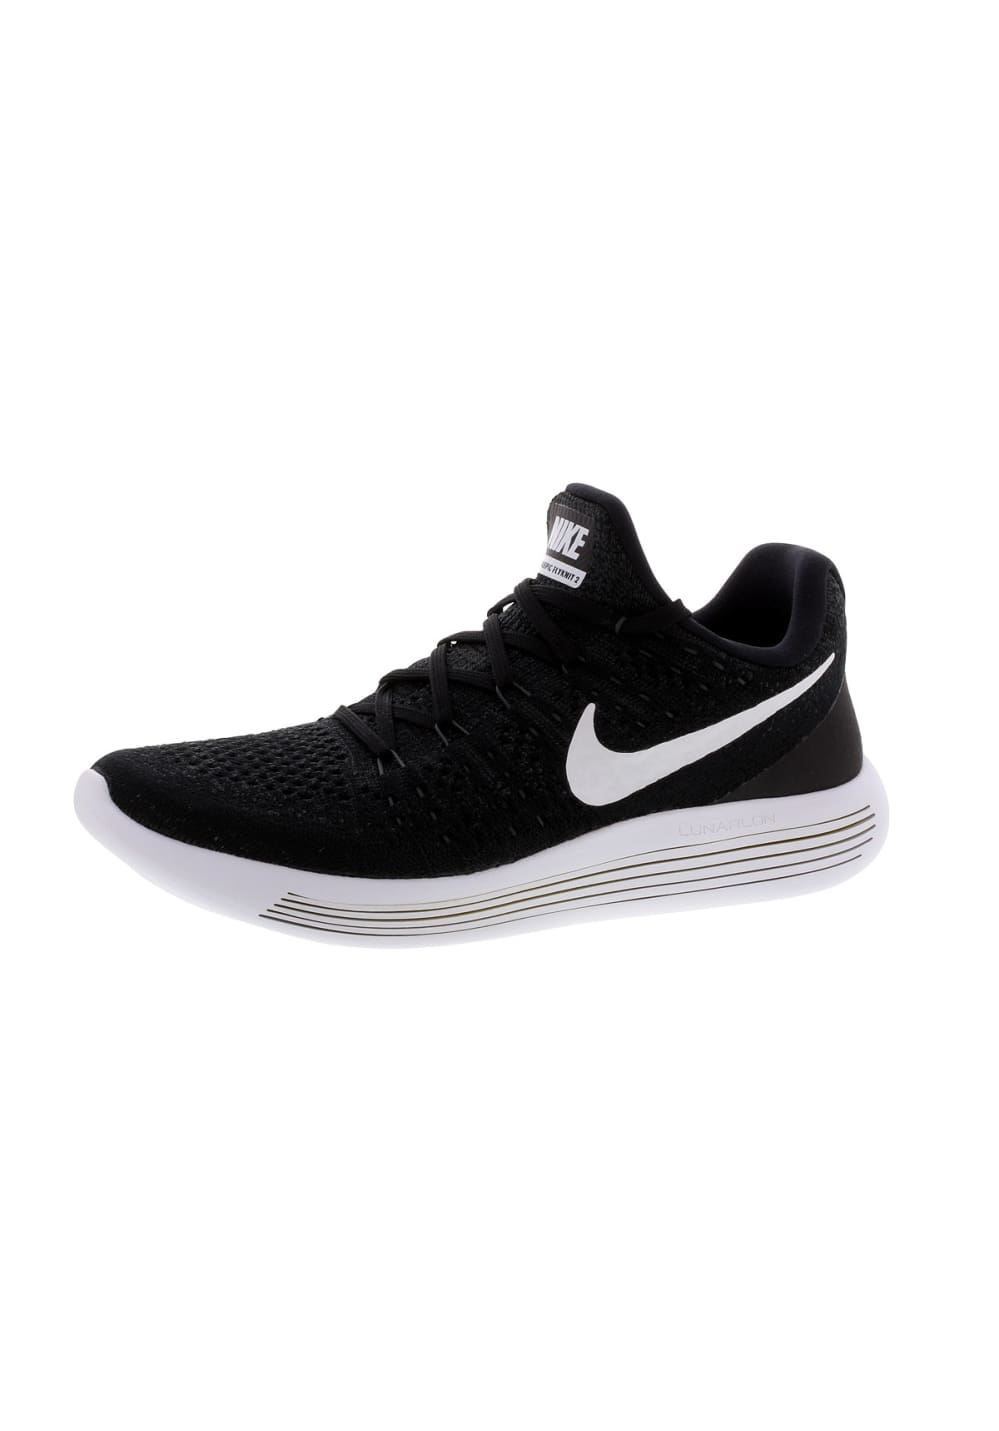 cac3210e9ec0d Next. -70%. Nike. Lunarepic Low Flyknit 2 - Running shoes for Women